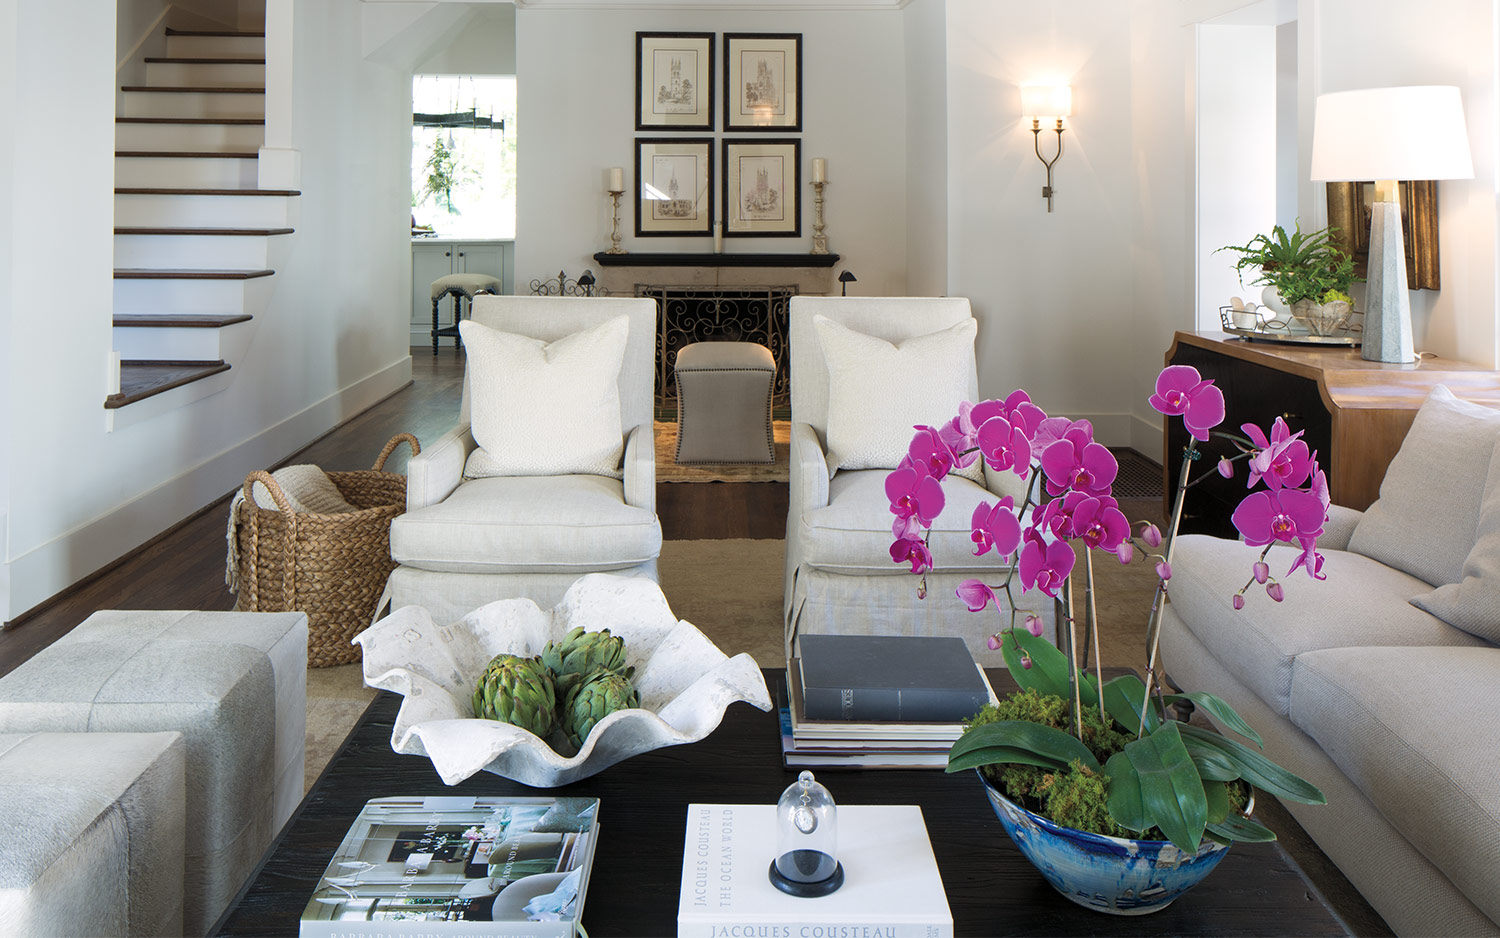 Interiors by Joanna Goodman of Christopher Architecture and Interiors.